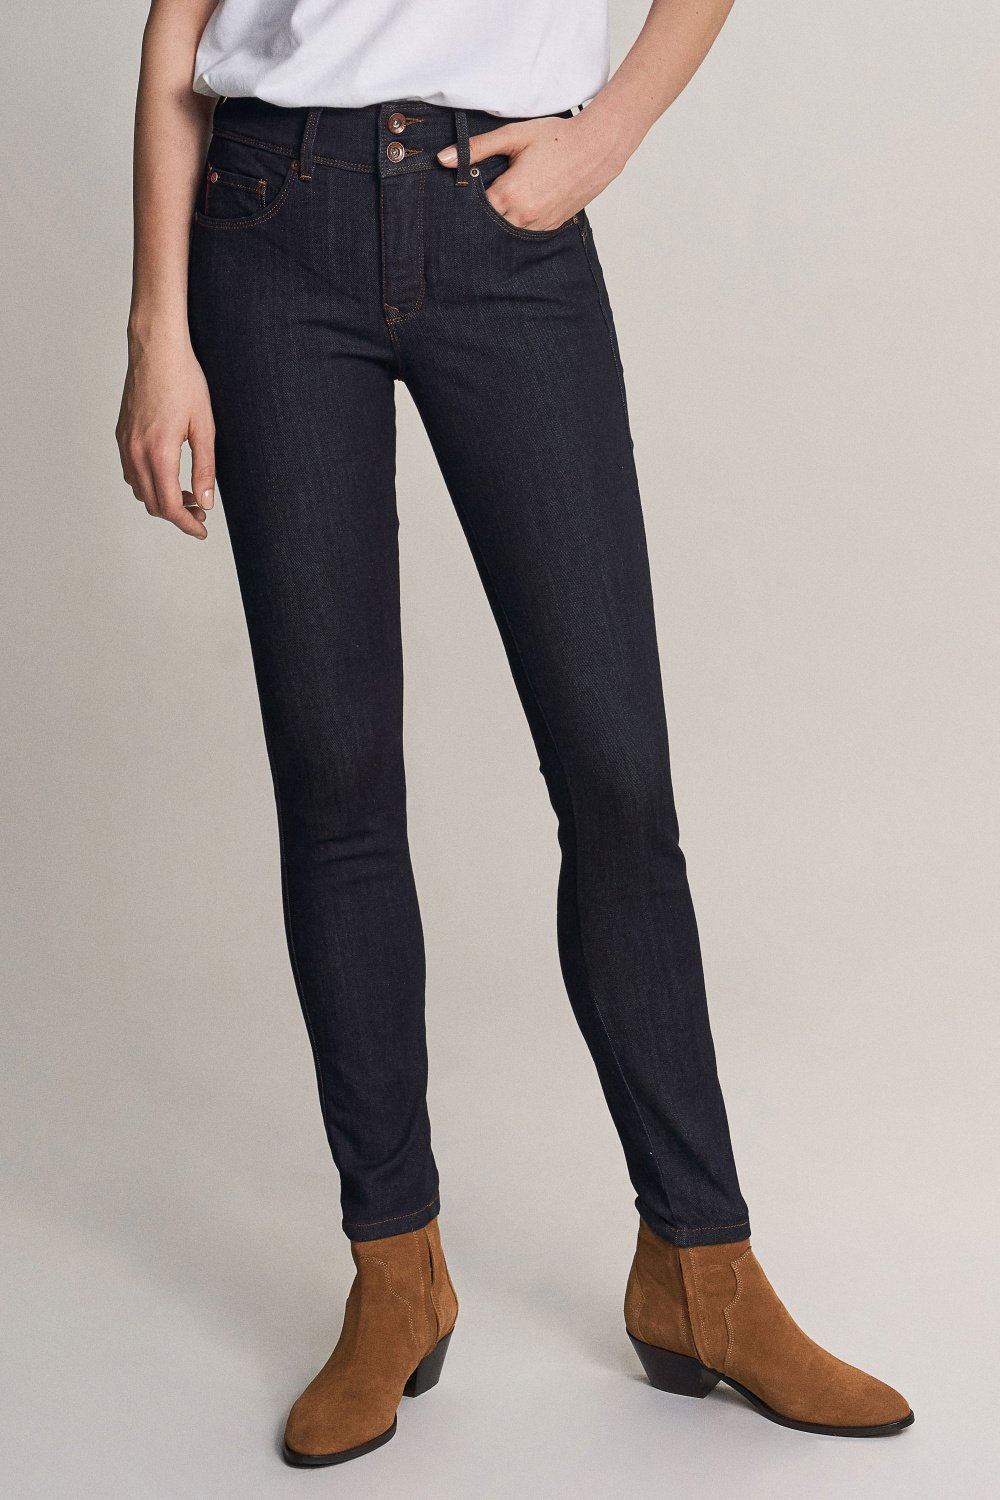 Secret push in skinny jeans with dark rinse - Salsa